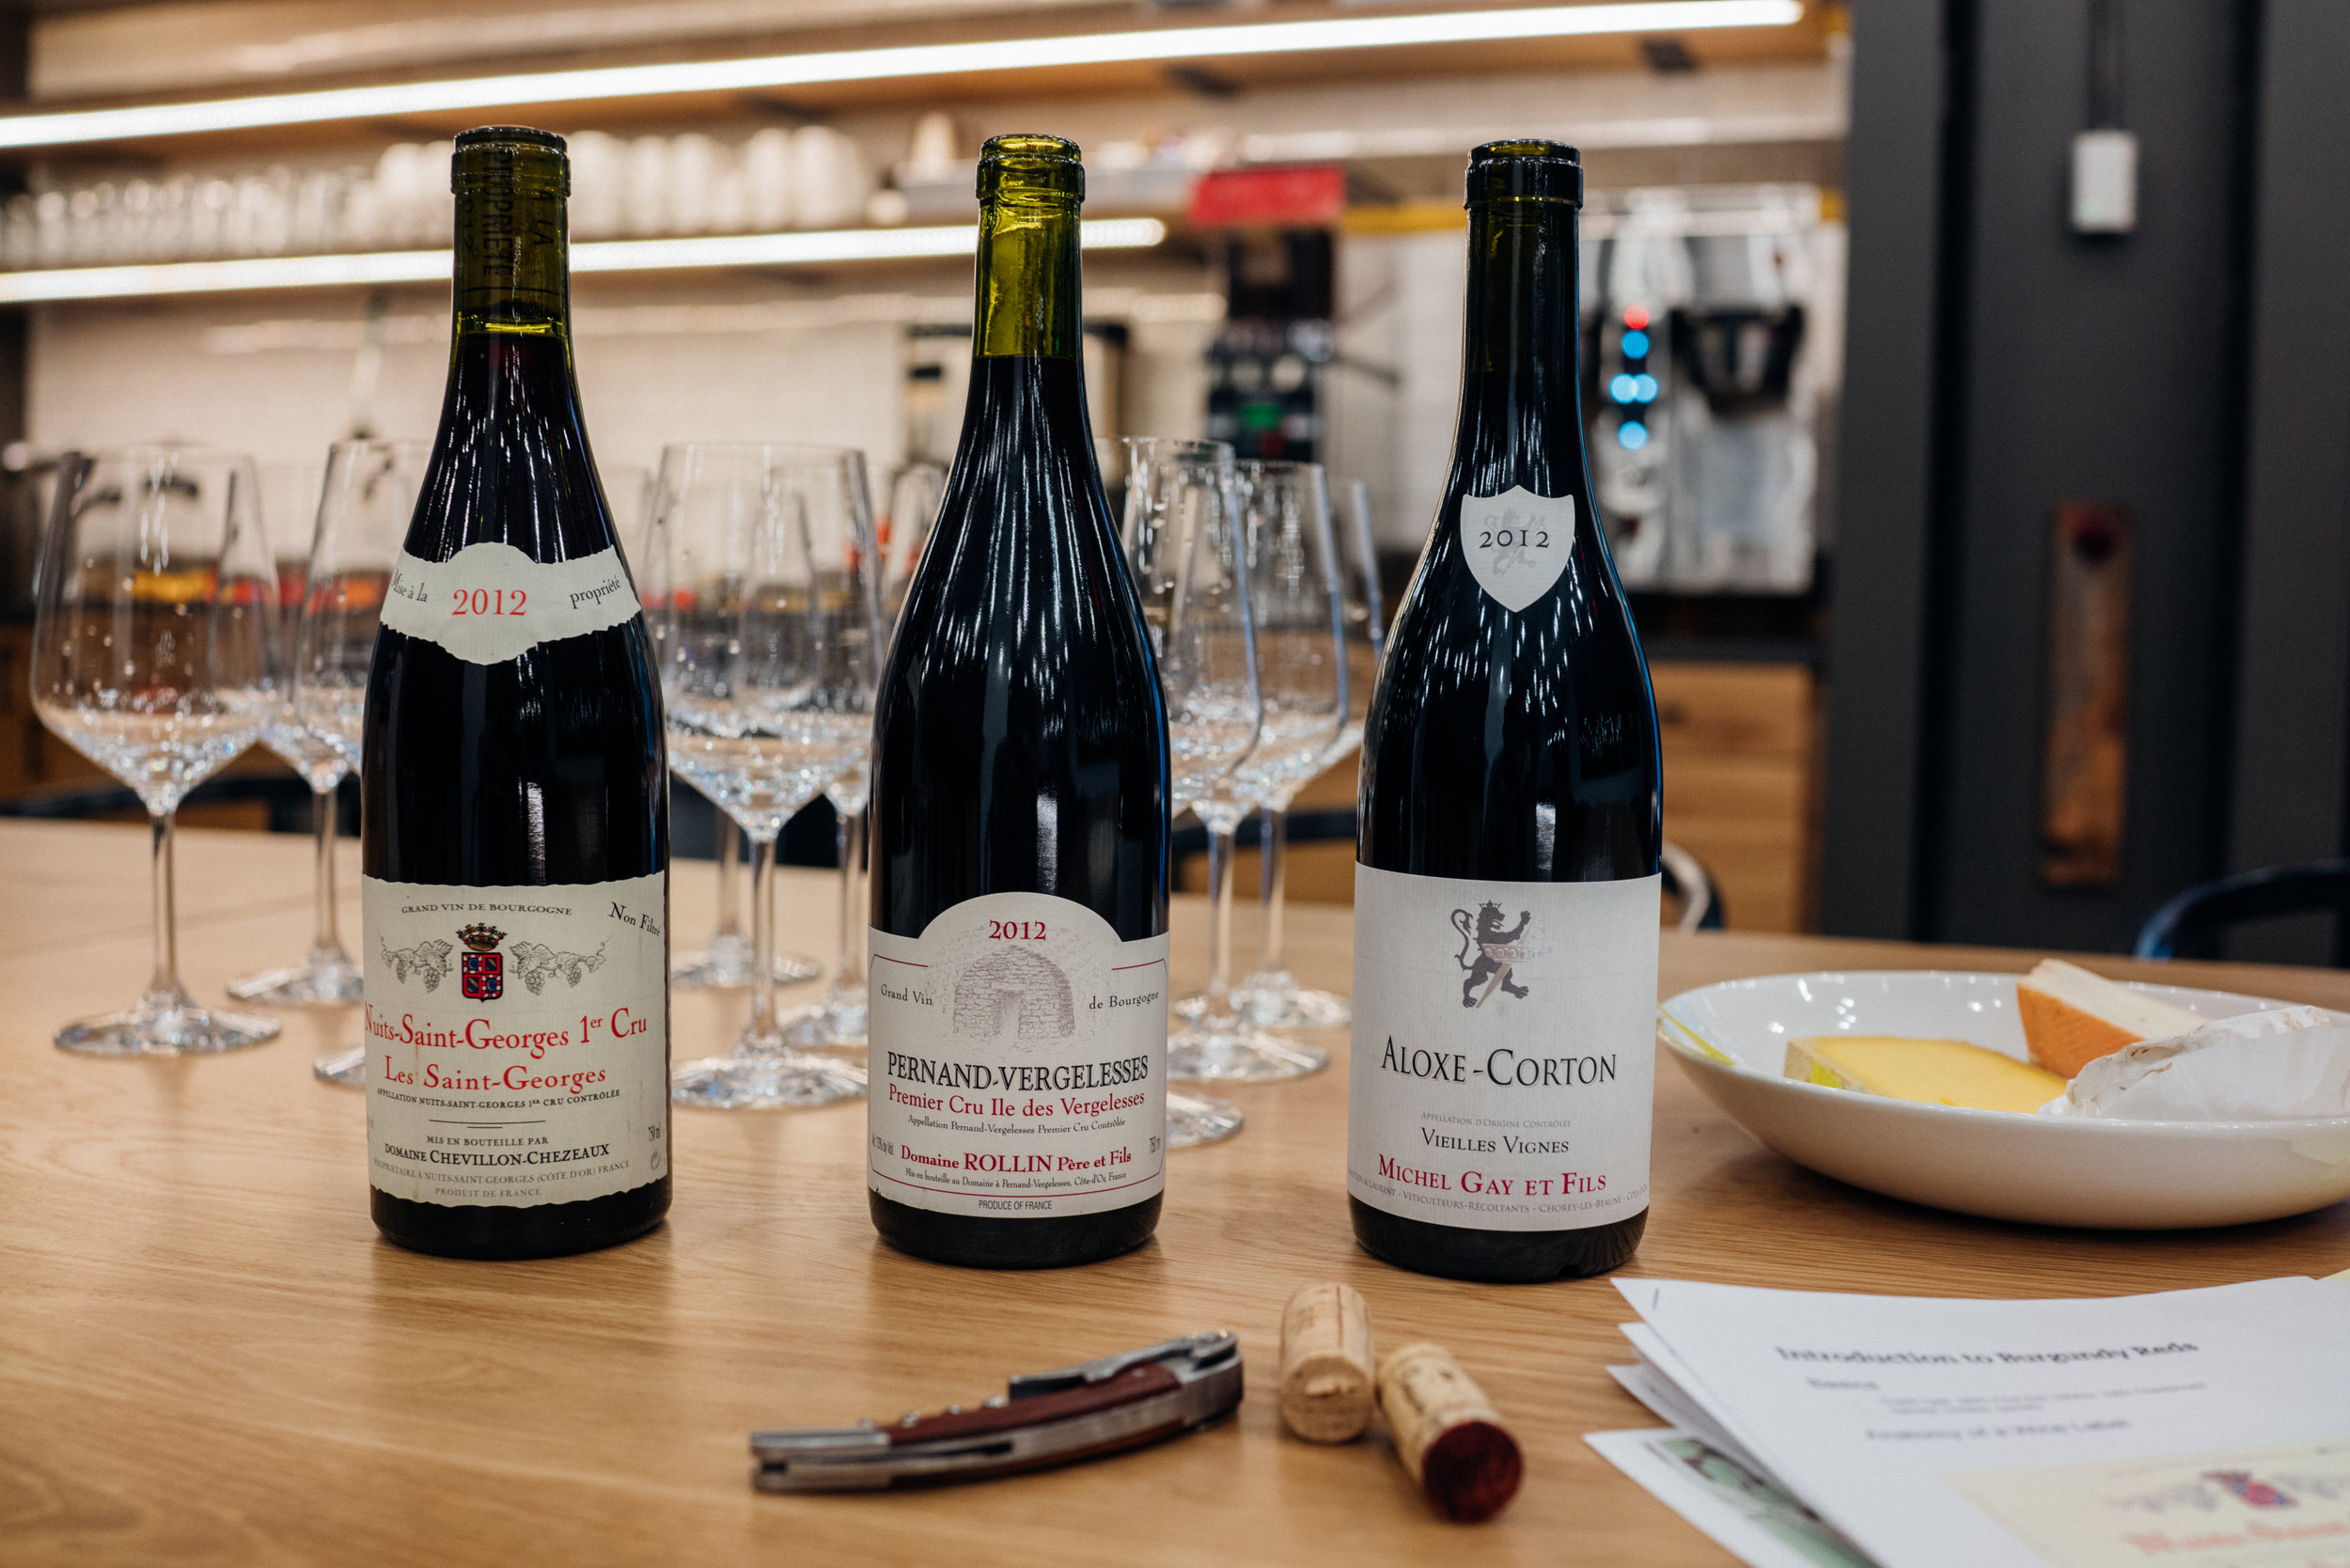 2012 Domaine Chevillon-Chezeaux Les Saint-Georges, Nuits-Saint-Georges Premier Cru, part of a tasting during an introductory Burgundy wine class I taught